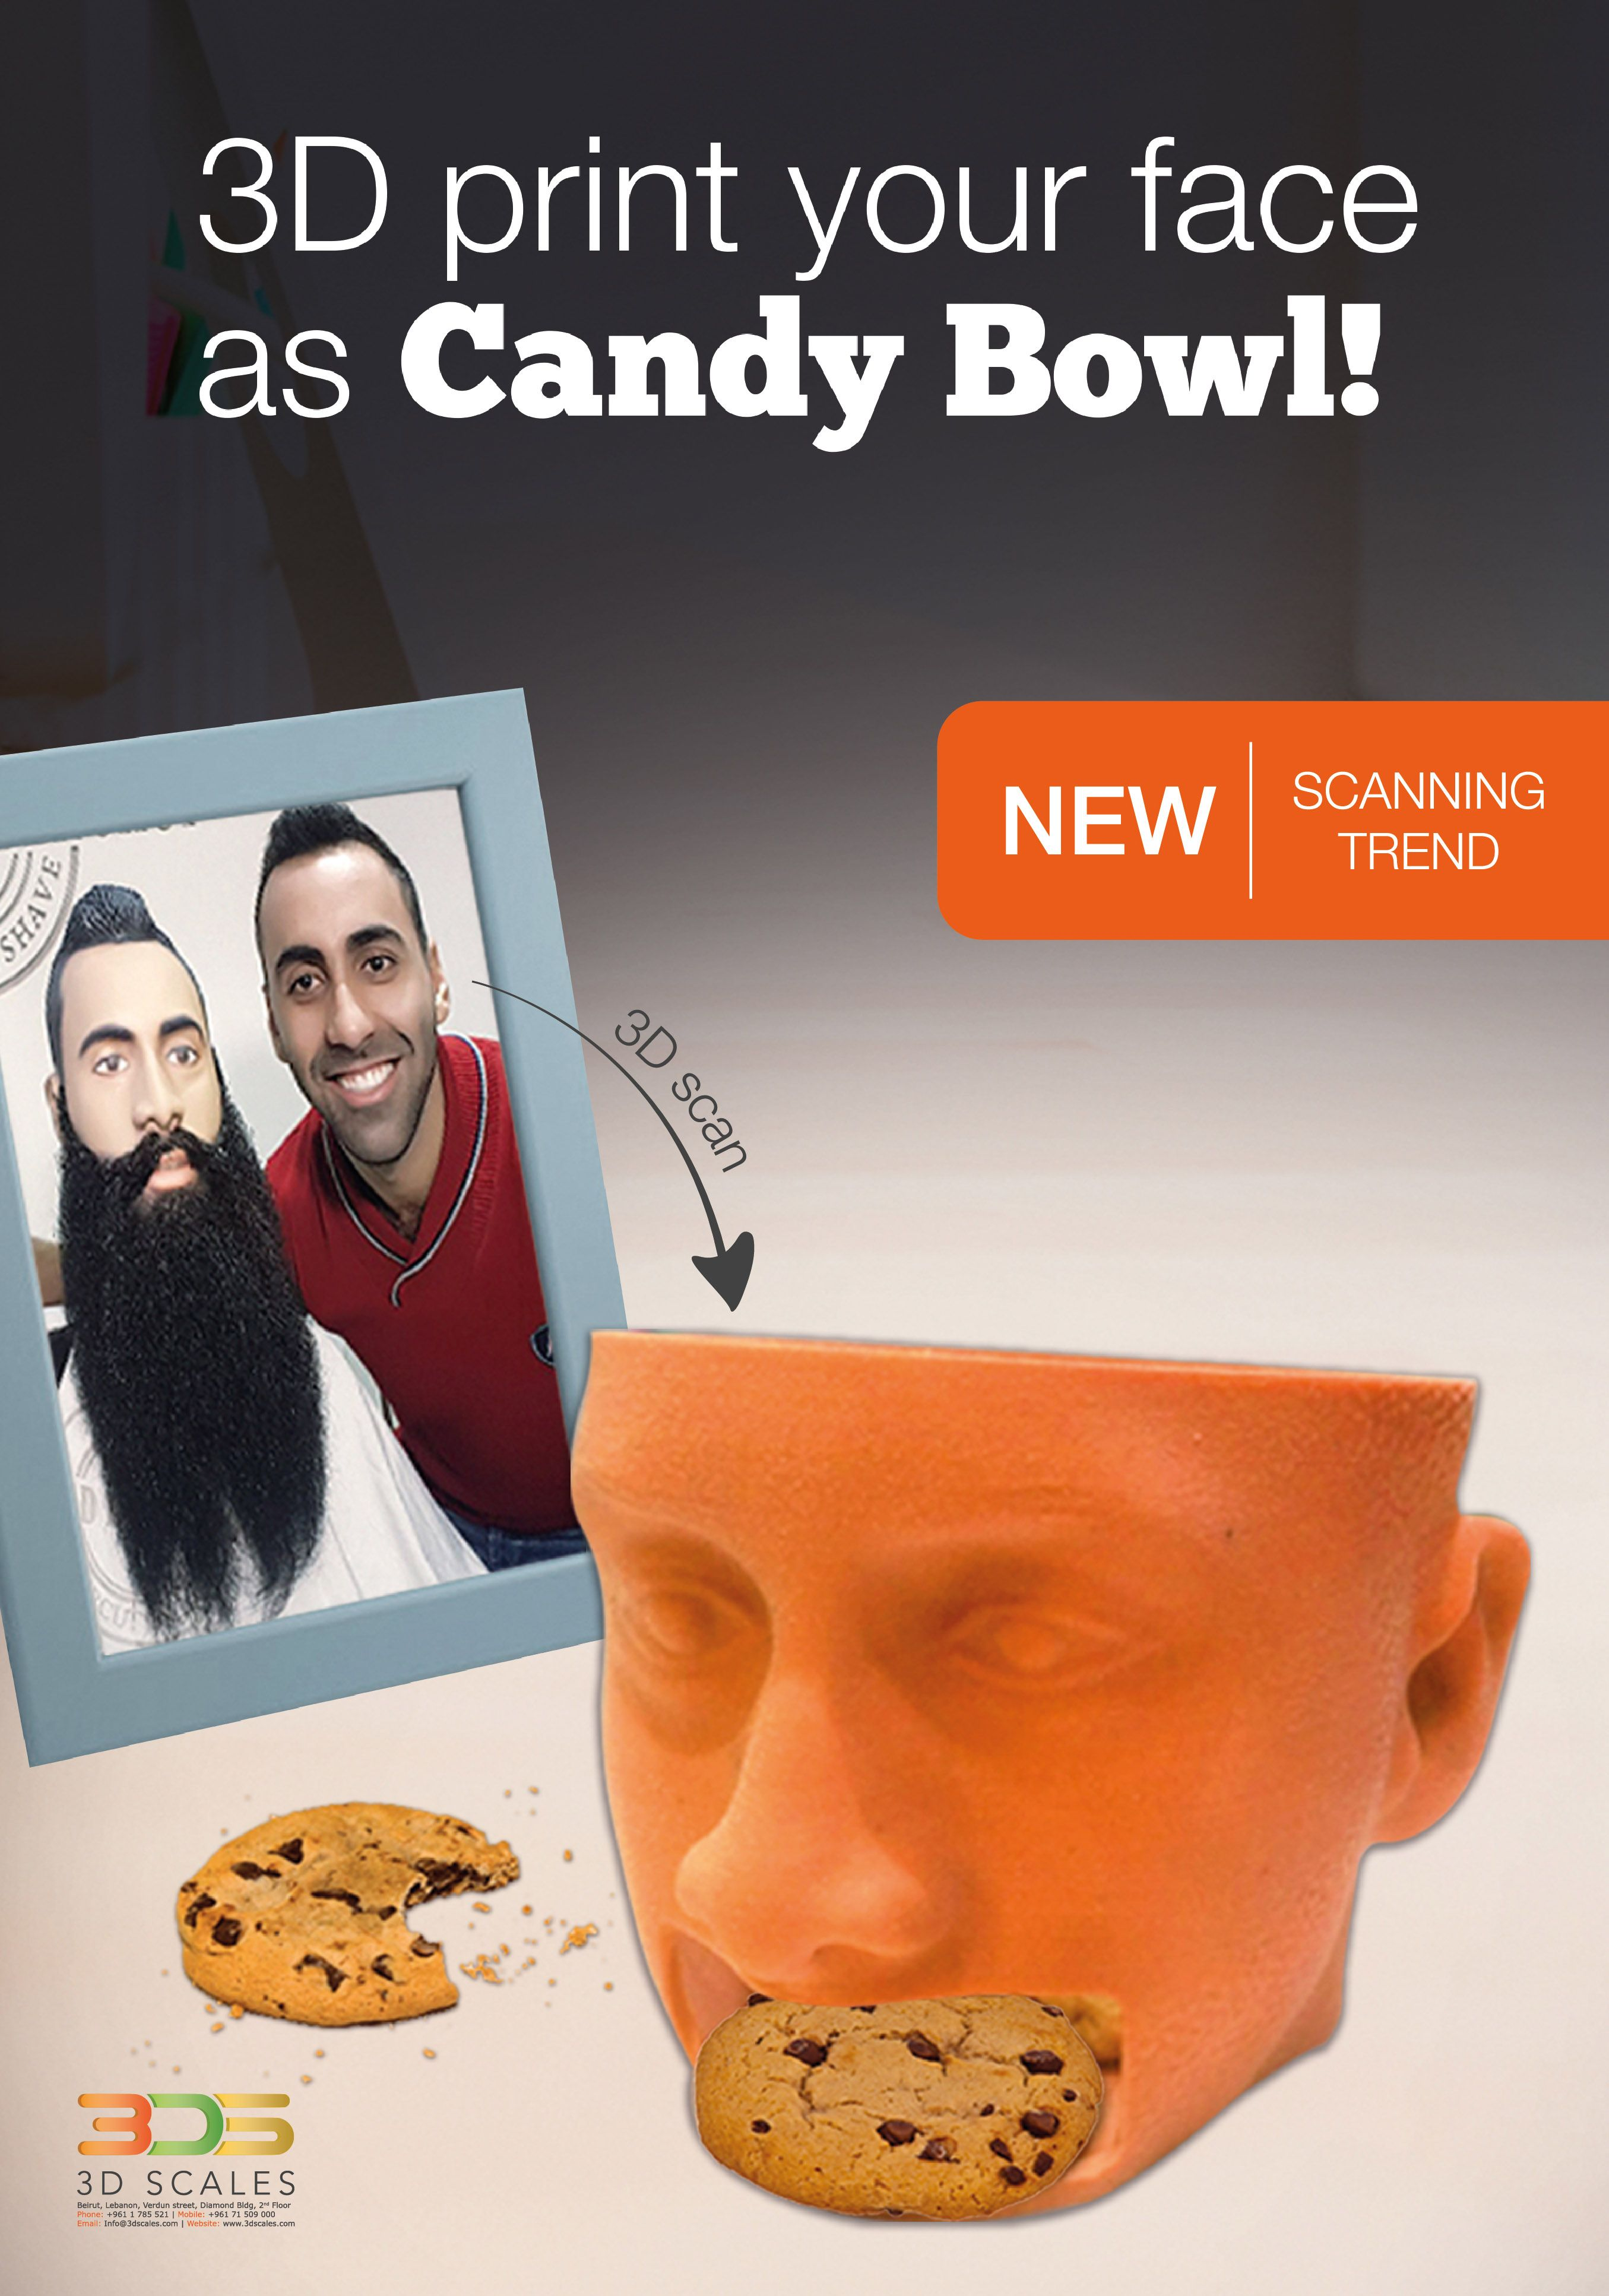 New scanning trend Candy bowl #3Dscales #3Dprinting  www.3dscales.com